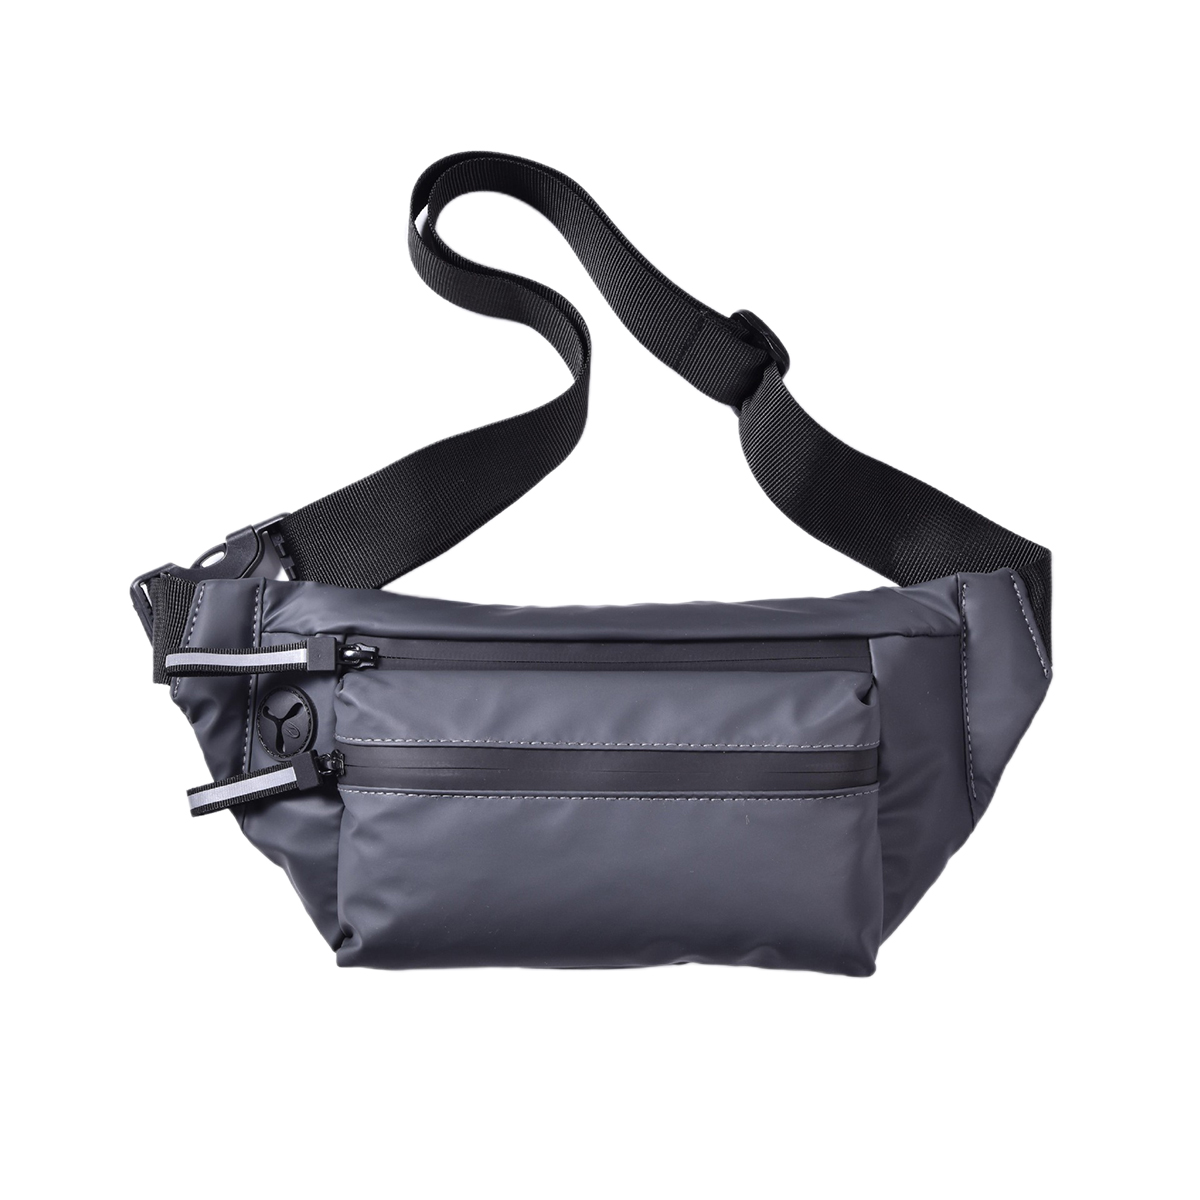 NEW 2020 Men's And Women's Universal Waist Bag PU Leather Waterproof Fanny Pack Outdoor Sports Hip-hop Chest Bag